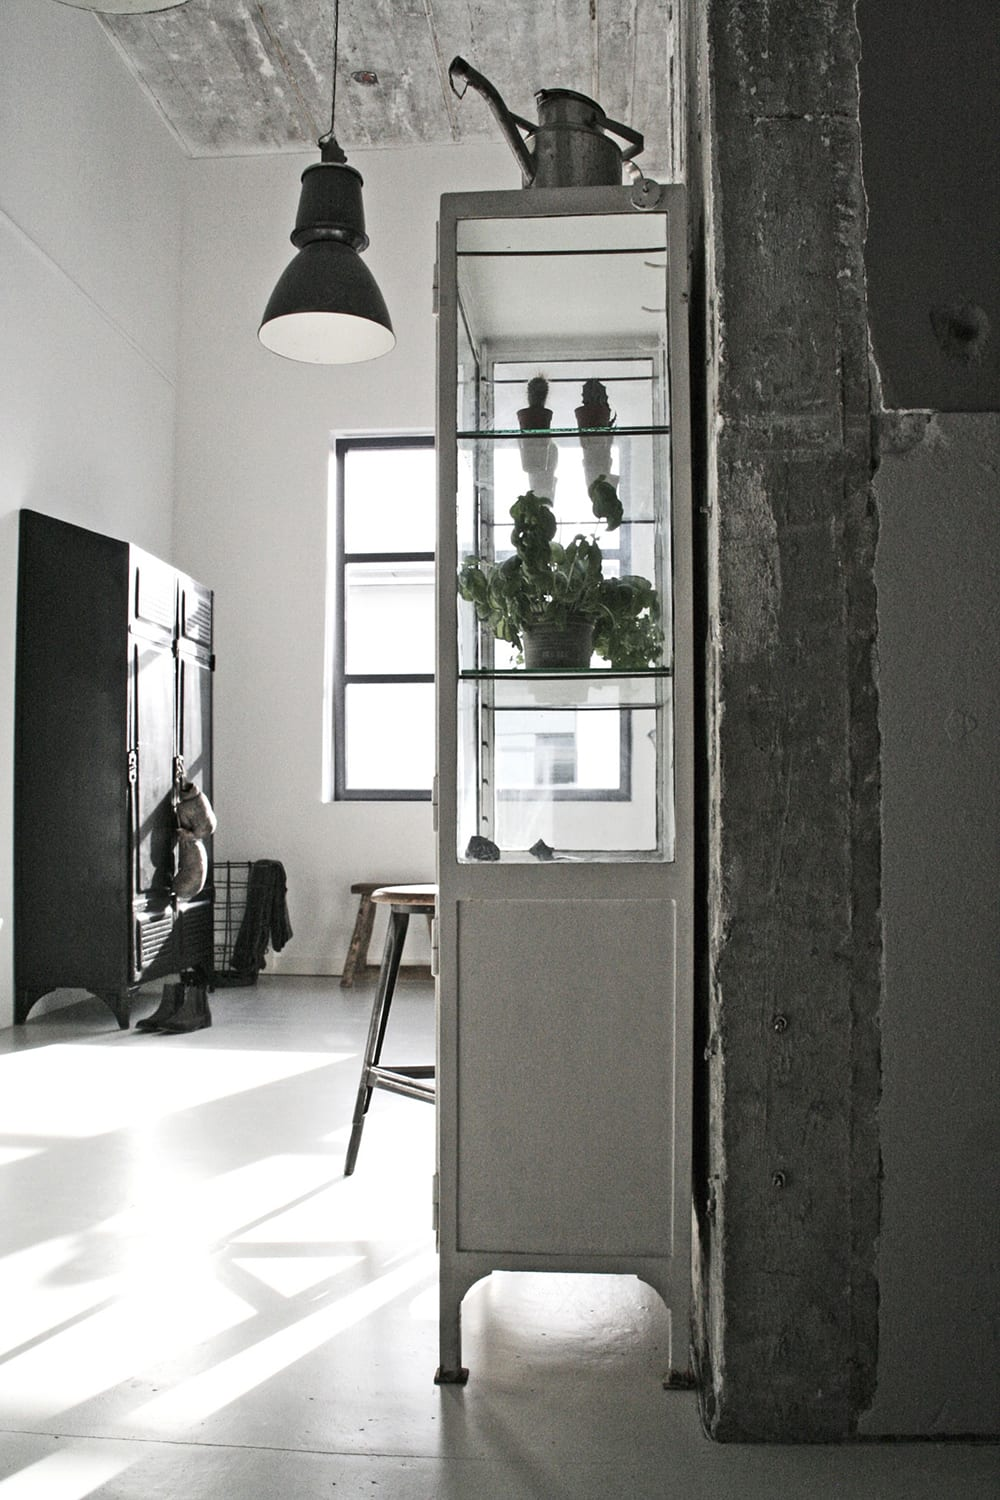 Style&Minimalism | Home Interiors | Jason Hering's Industrial Loft Apartment by stylist Renee Arns